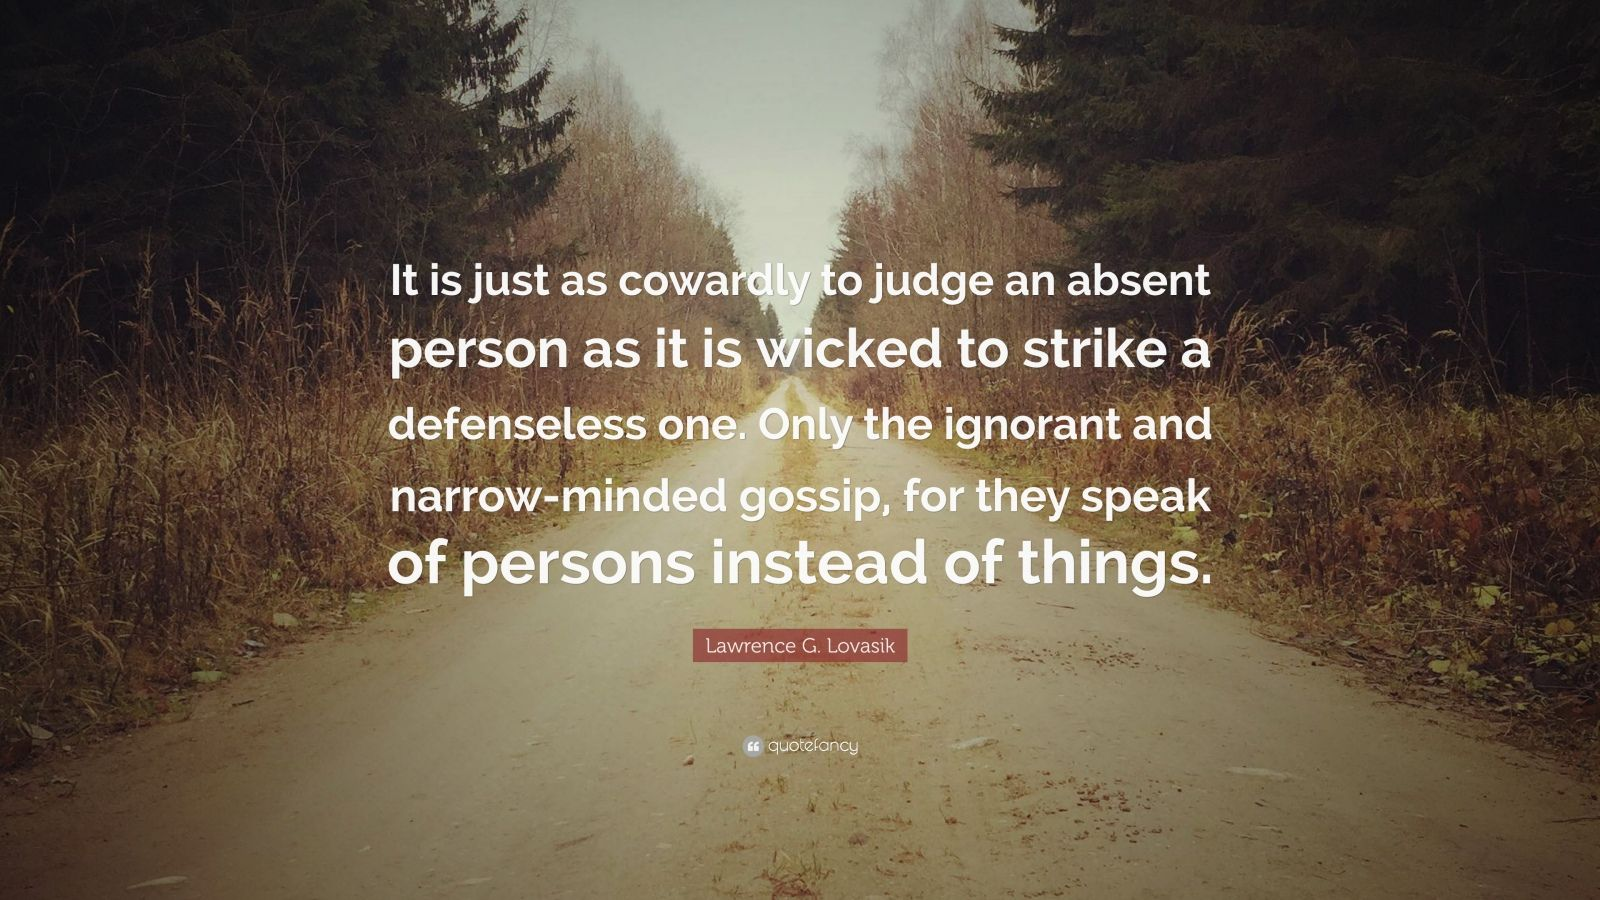 """Lawrence G. Lovasik Quote: """"It is just as cowardly to judge an absent person as it is wicked to strike a defenseless one. Only the ignorant and narrow-minded gossip, for they speak of persons instead of things."""""""